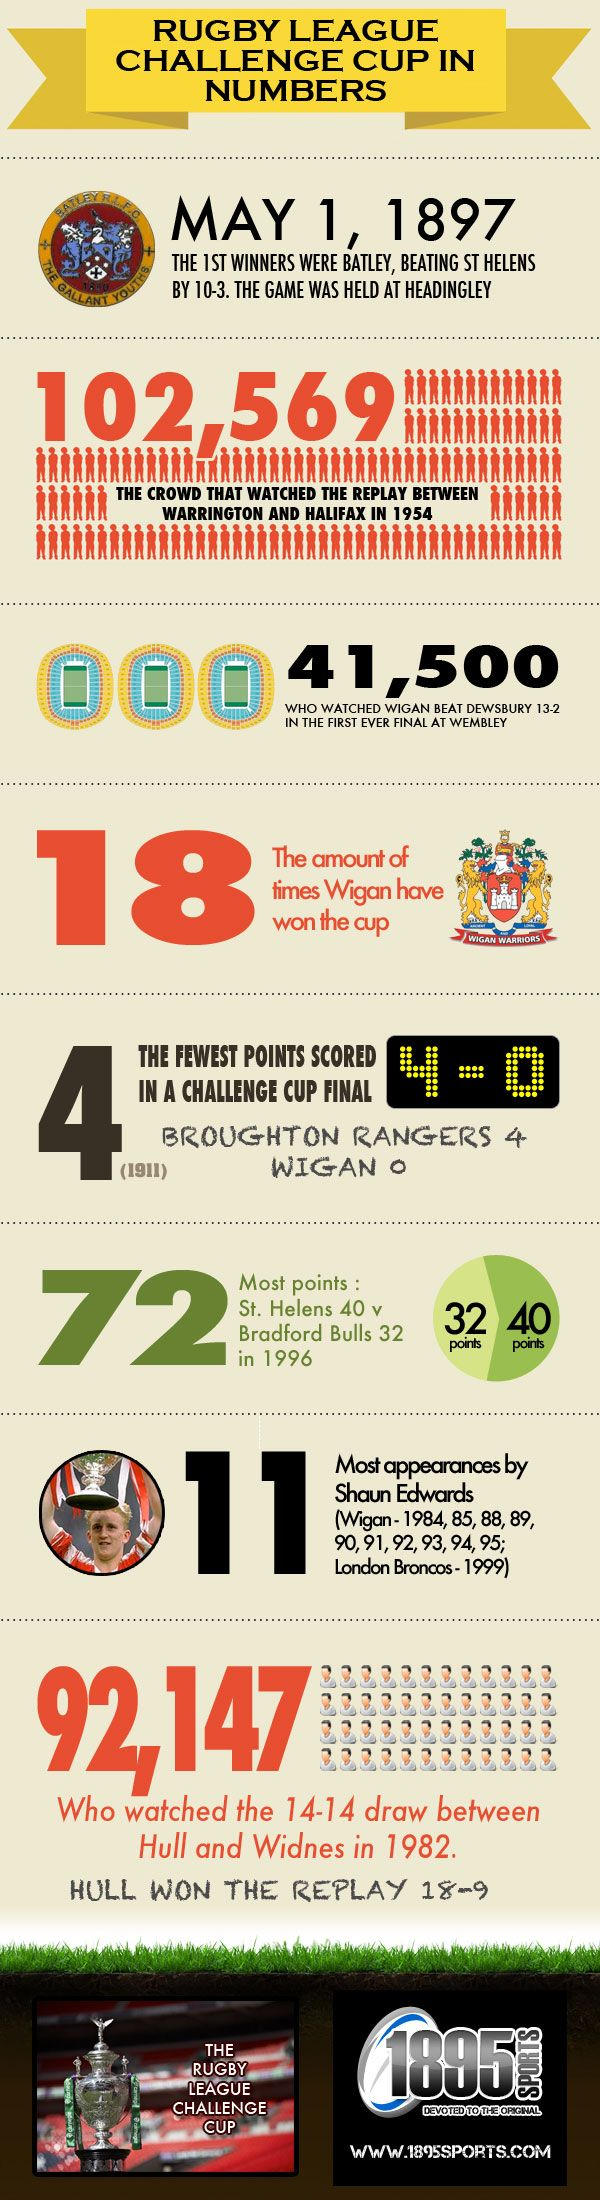 Rugby League Challenge Cup in numbers